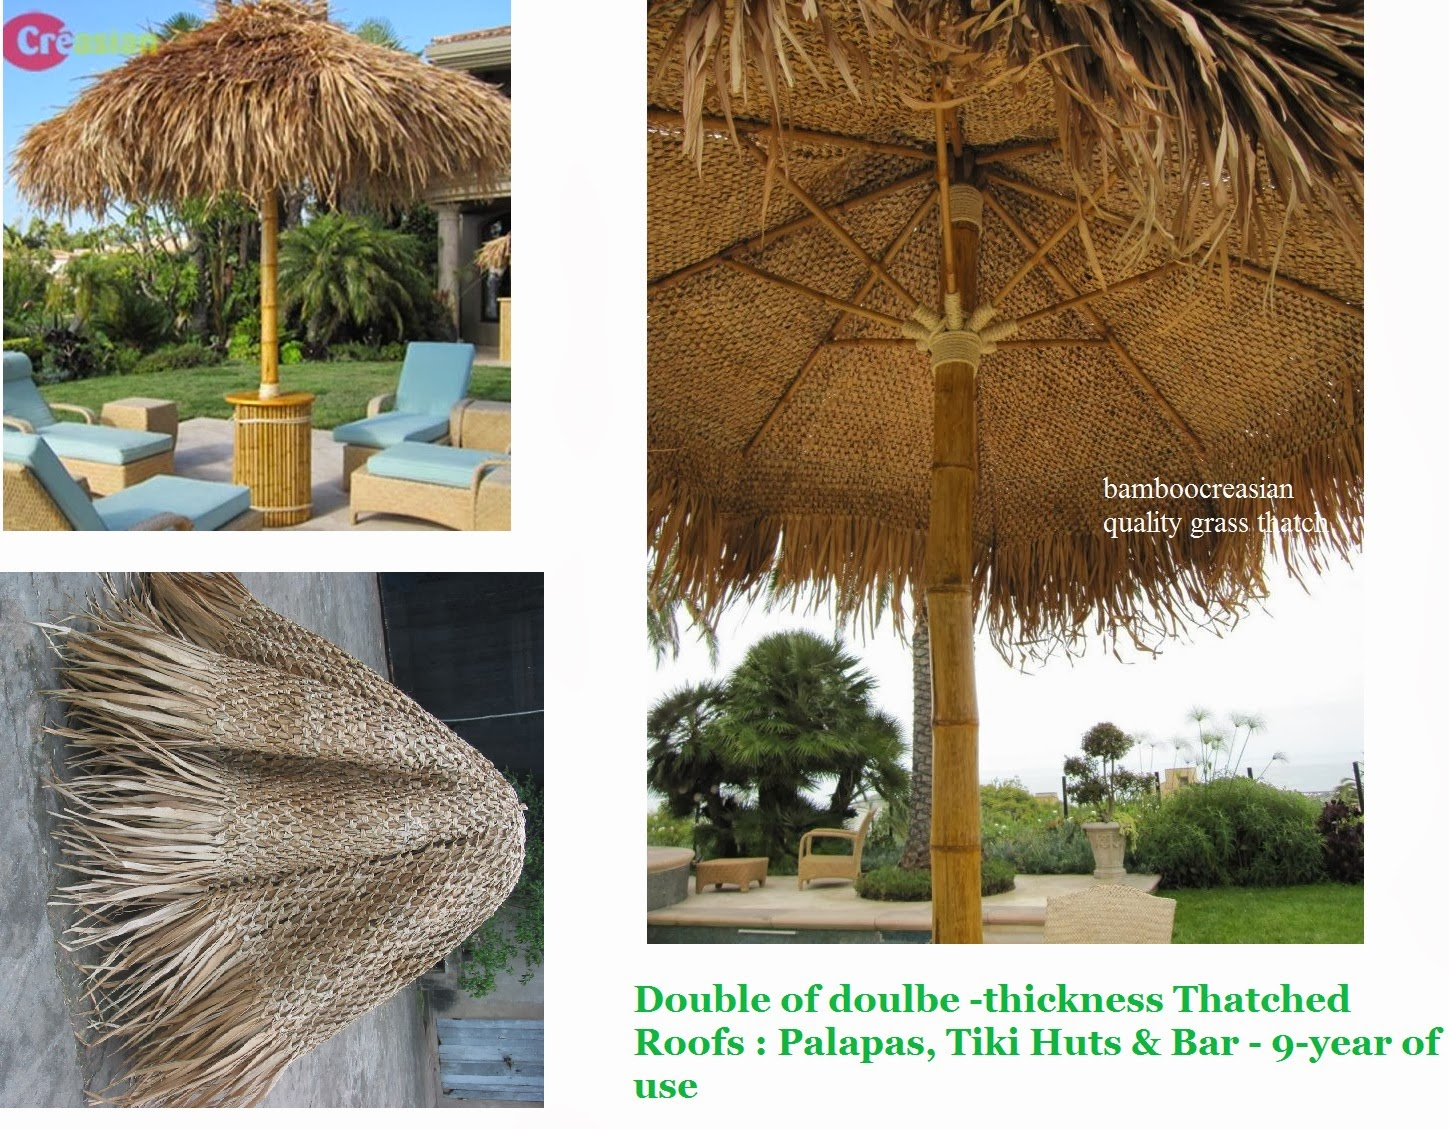 #1Thatchu0027s Roofs  A Range Of Thatching Of Tiki_hutu0026bar/palapa/umbrella,roofing  Of Thatched Cover